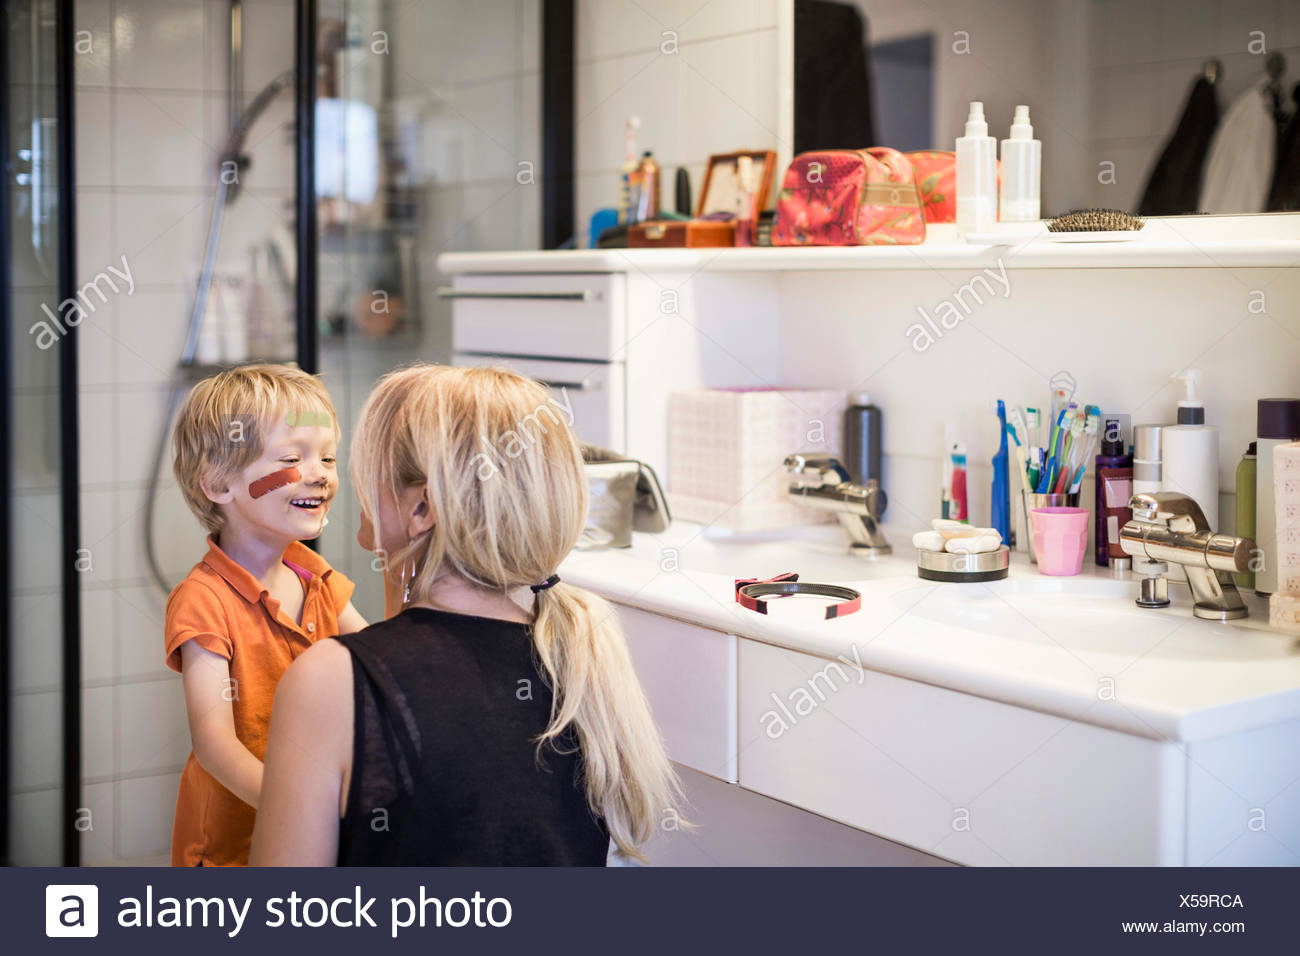 Woman looking at son's injured face in bathroom - Stock Image